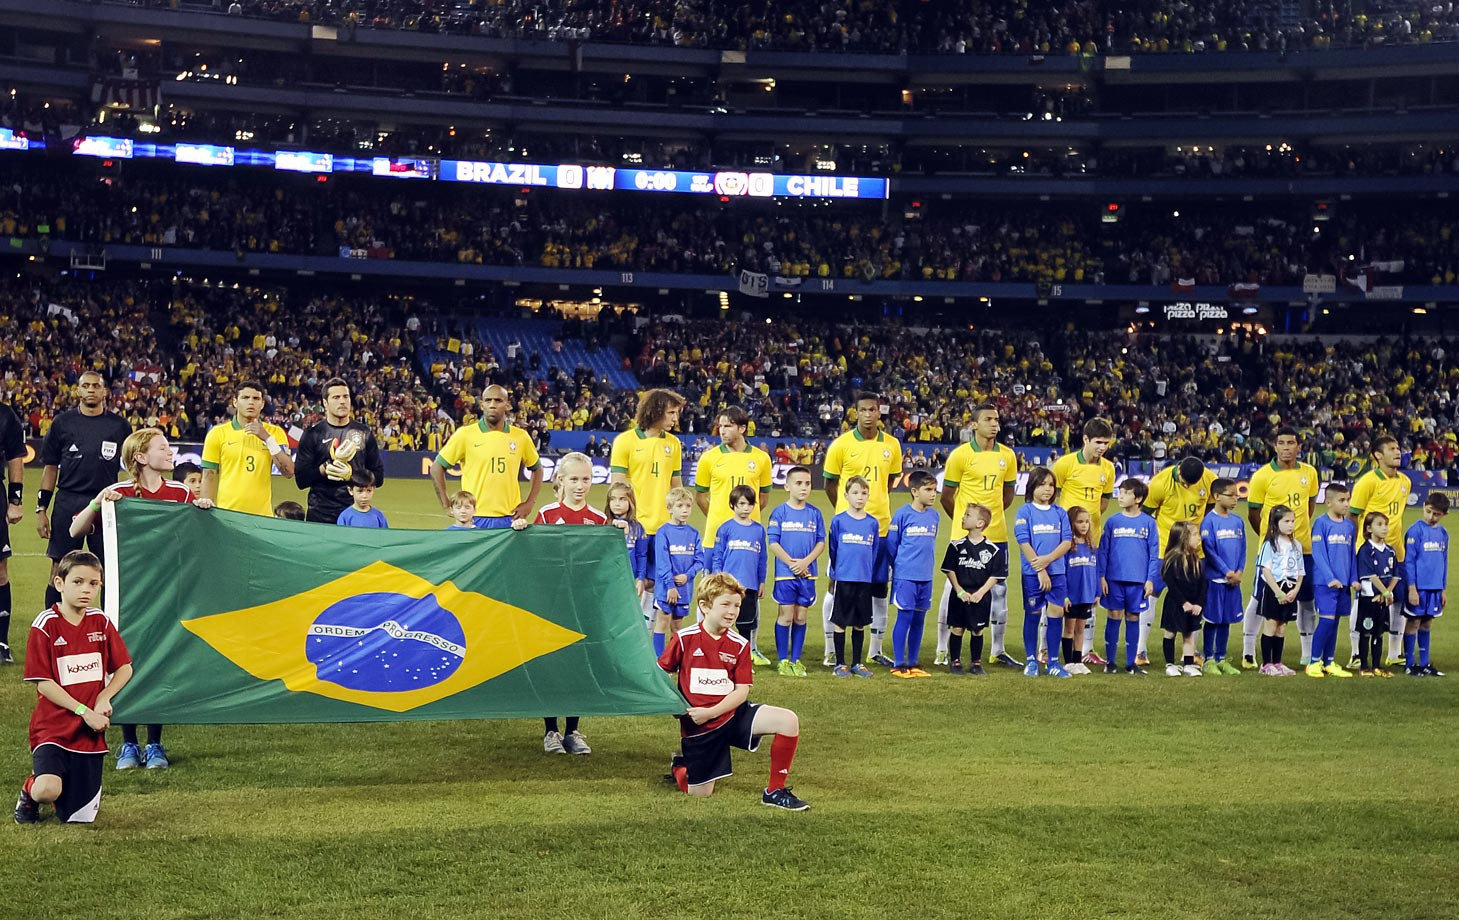 The Brazil team on the field before playing Chile at Rogers Centre in Toronto on Nov. 19, 2013.